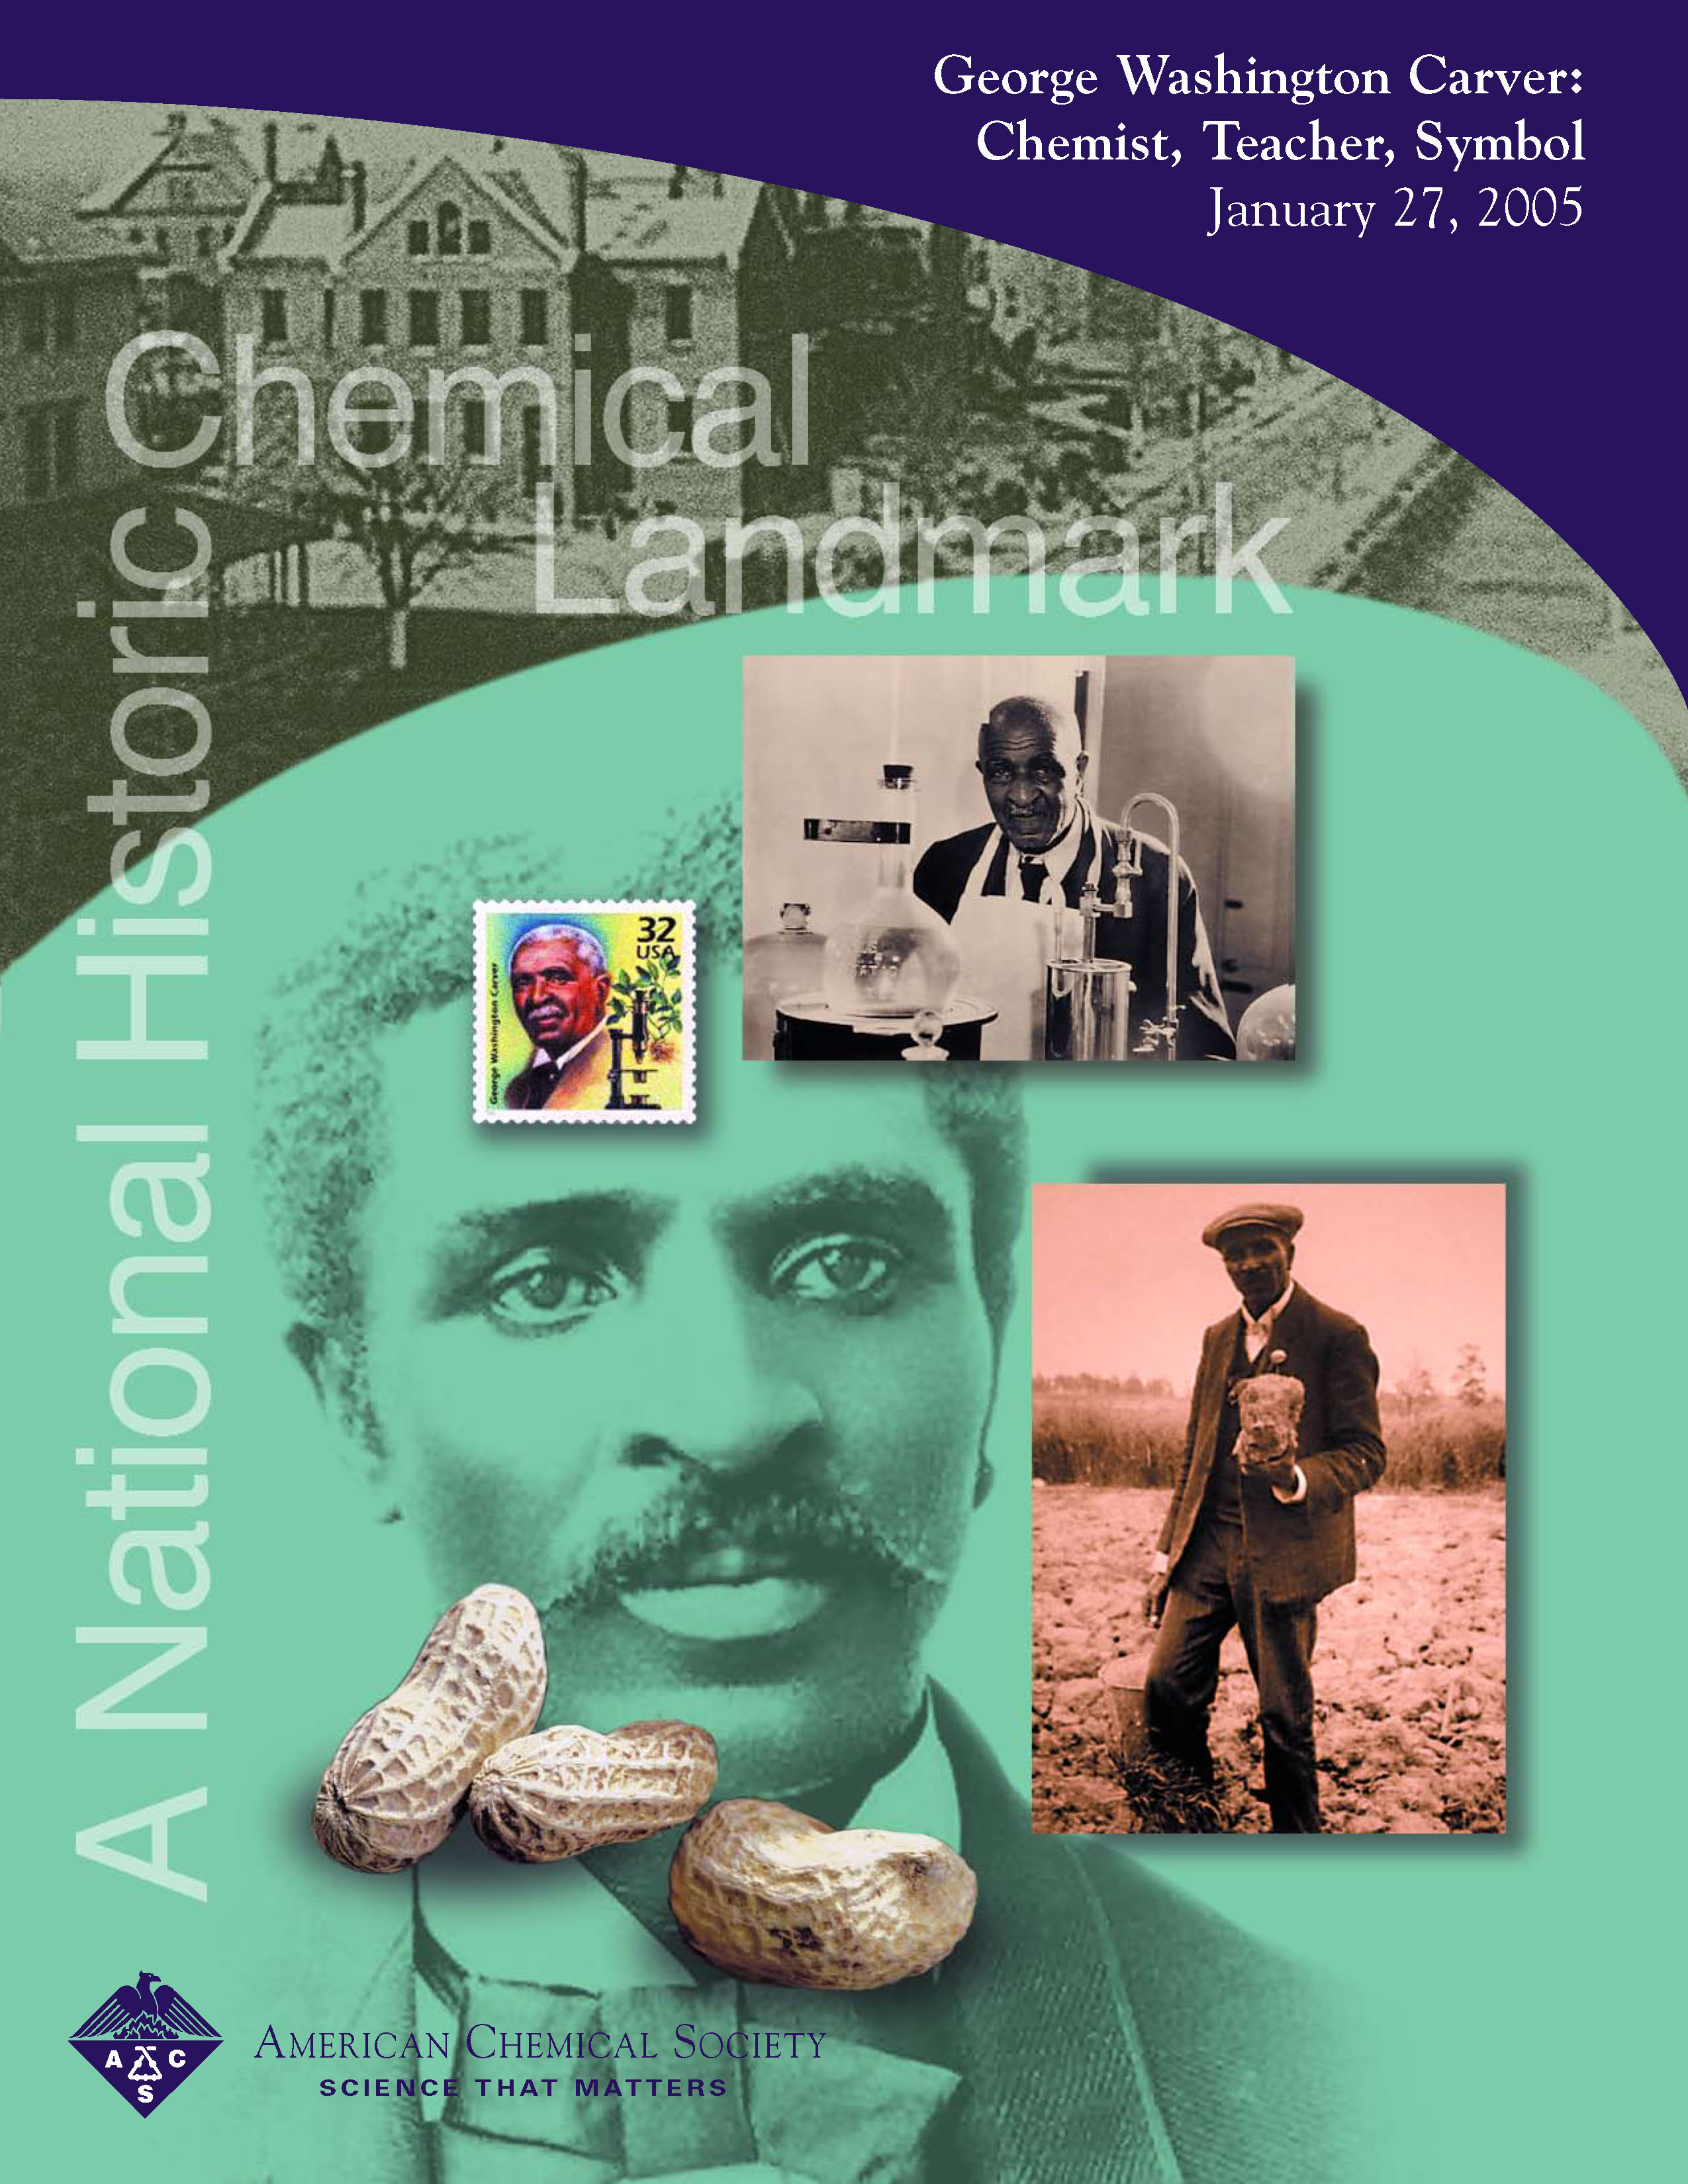 "george washington carver american chemical society ""george washington carver chemist teacher symbol"" commemorative booklet """